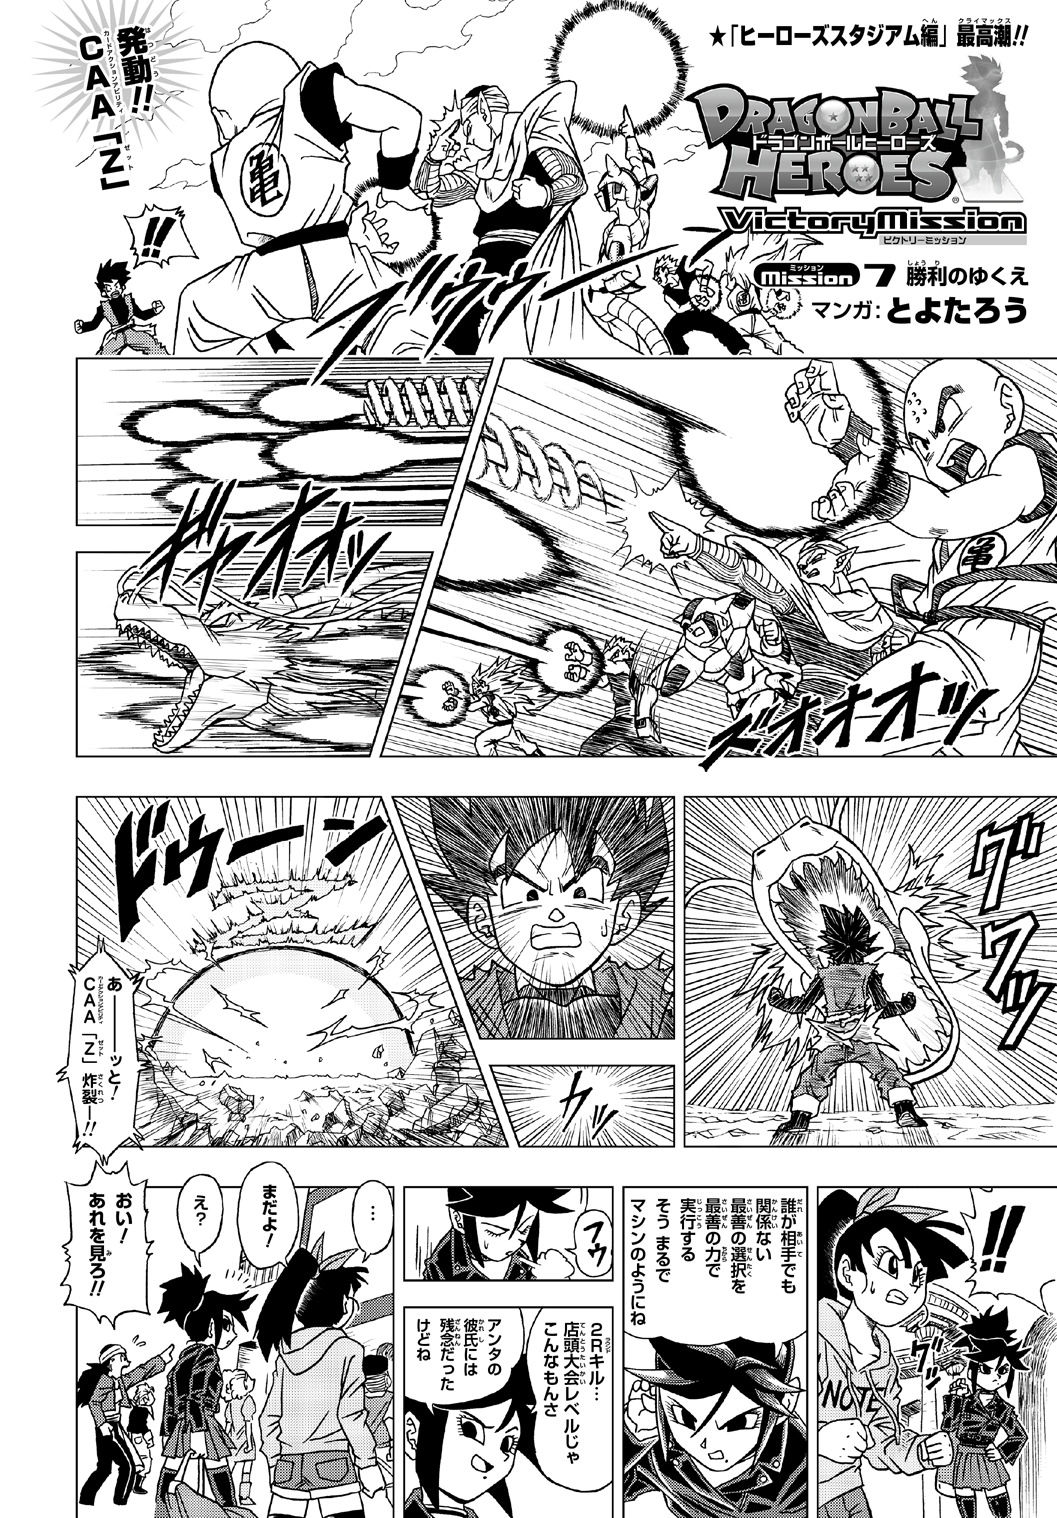 Dragon Ball Heroes Victory Mission Chapitre 007